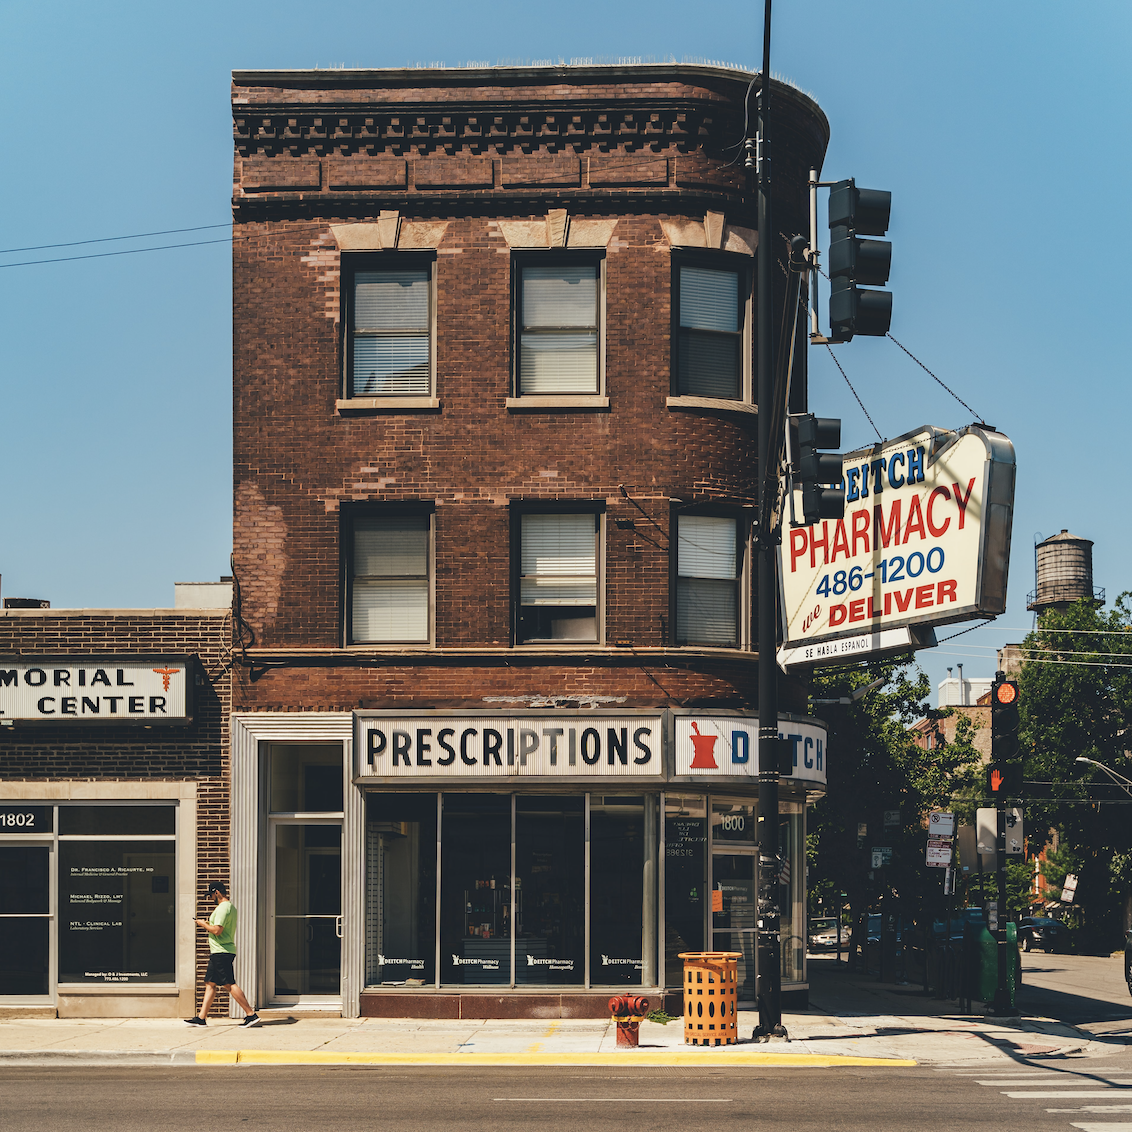 A visit to an old-fashioned corner pharmacy has given way to a growing consumer preference for the ease, safety, and convenience of delivery